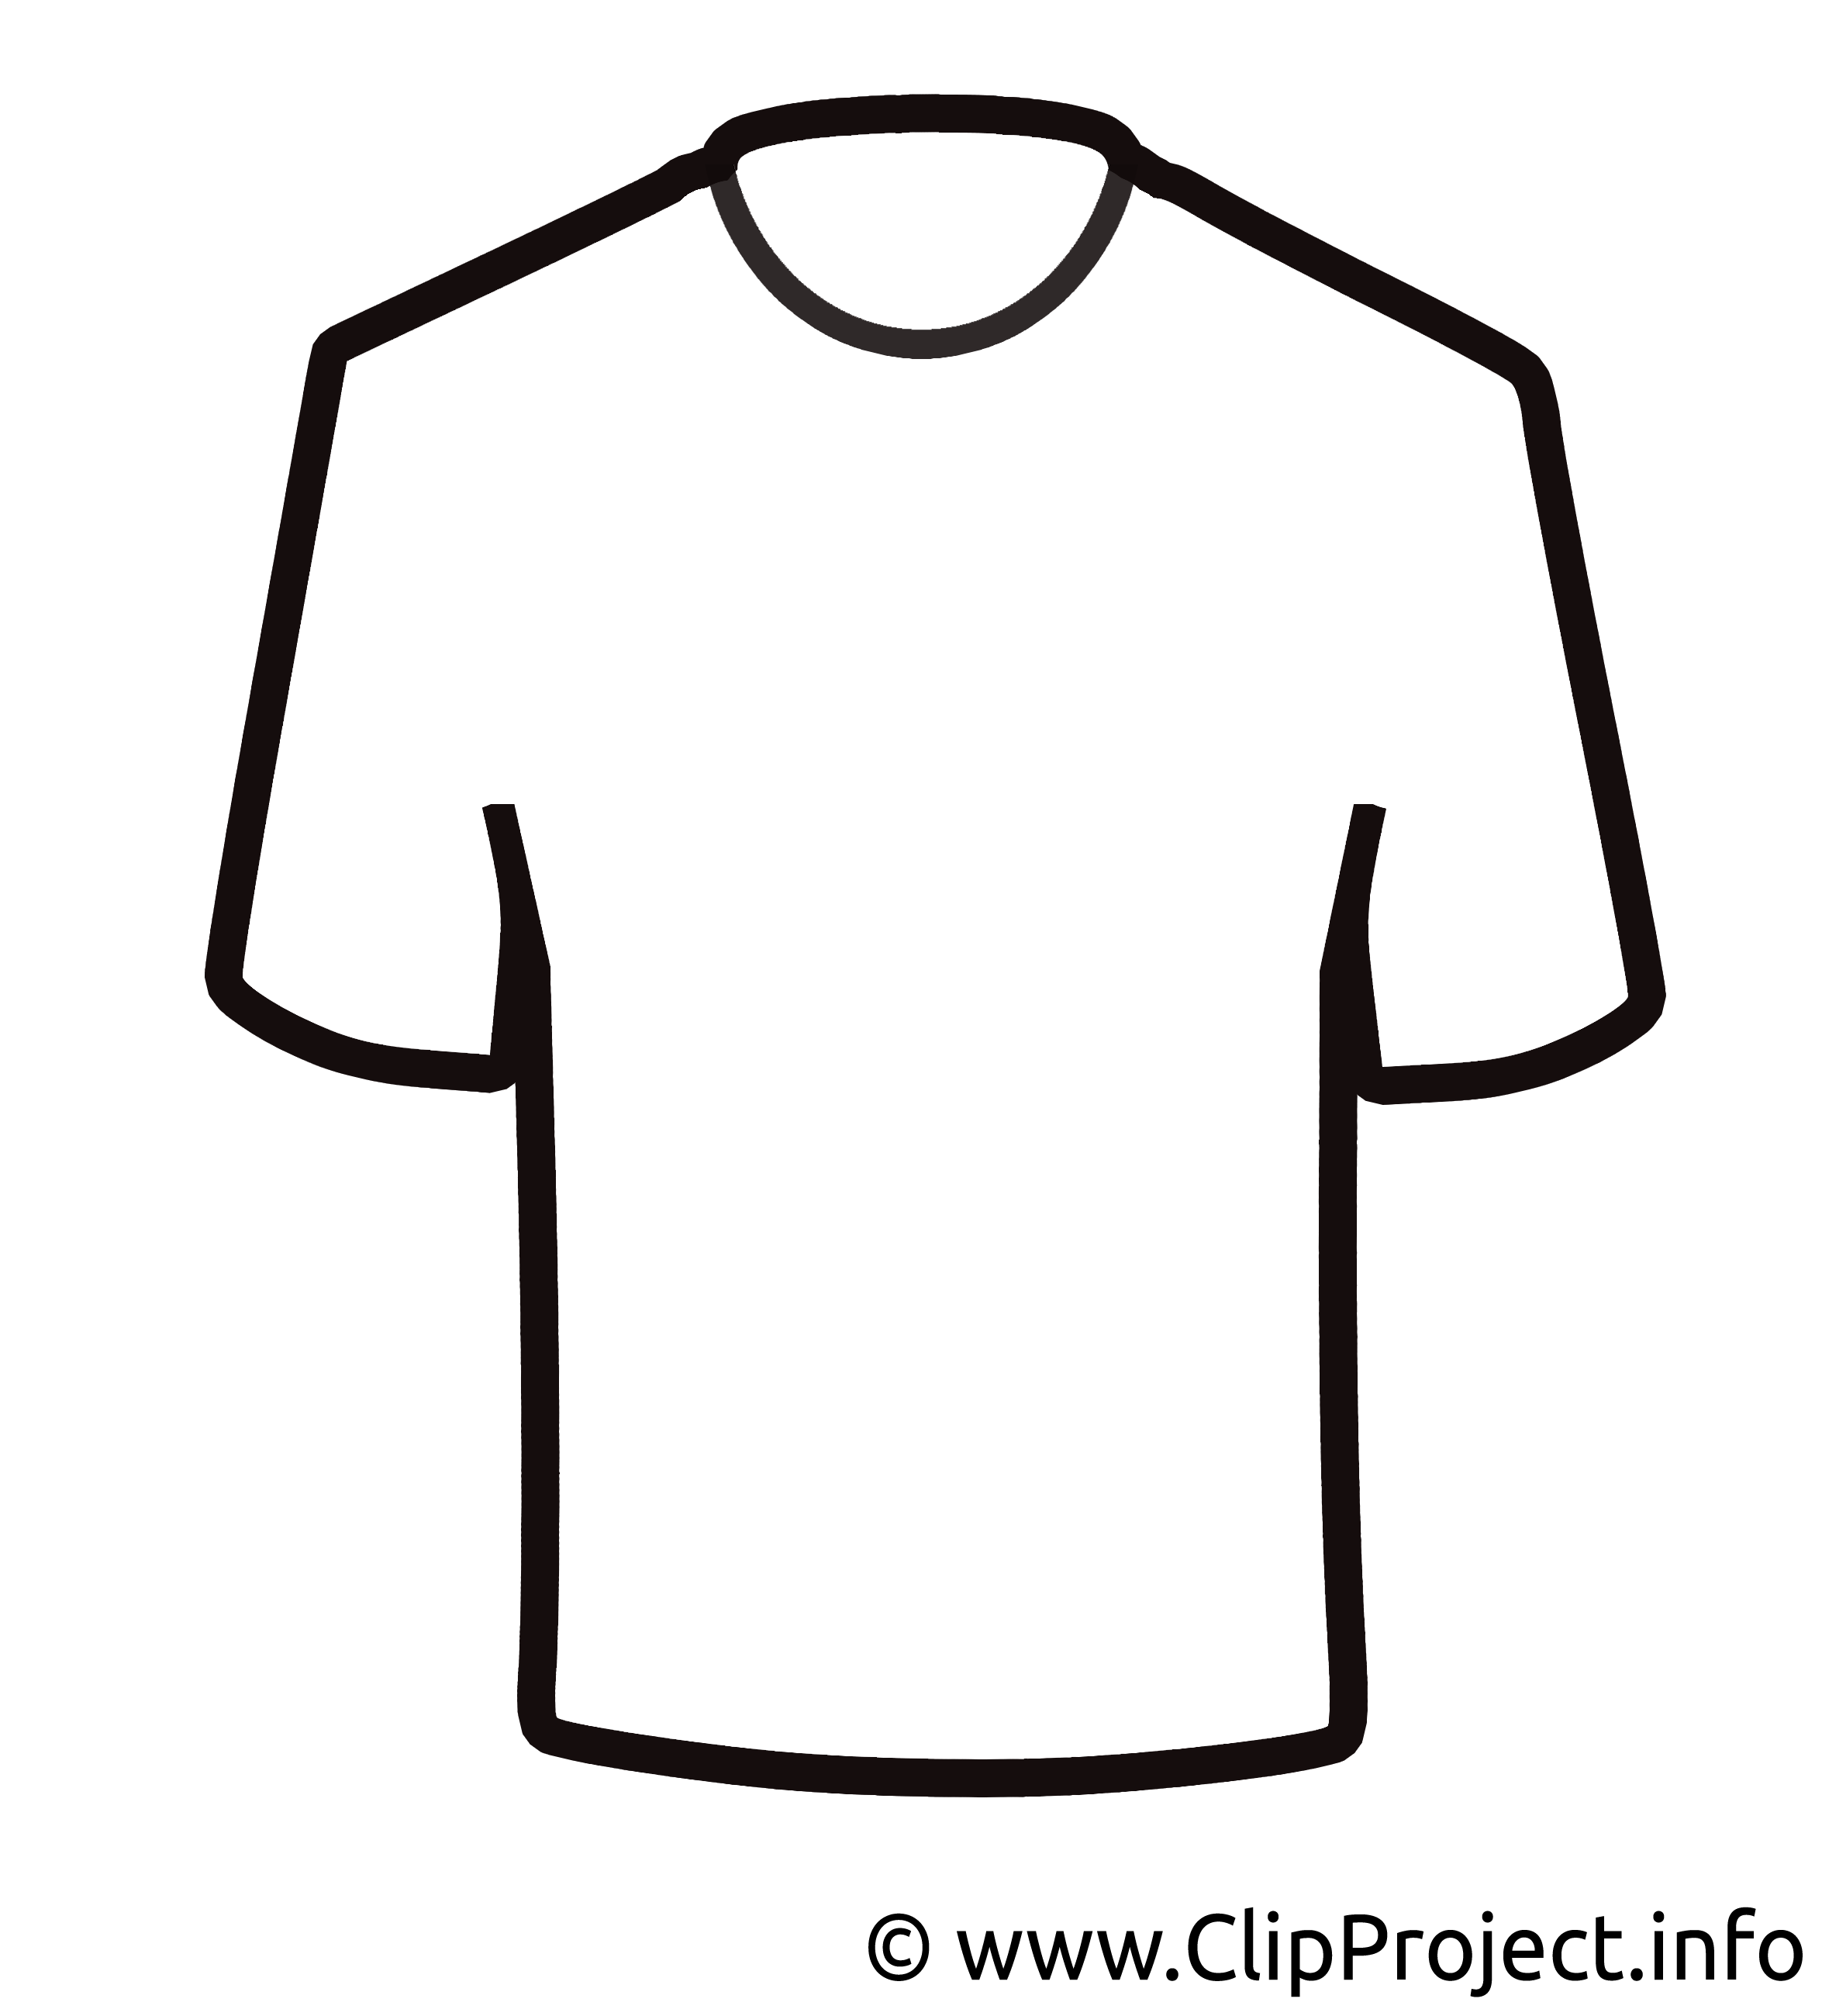 T-shirt vêtements clip art gratuit dessin